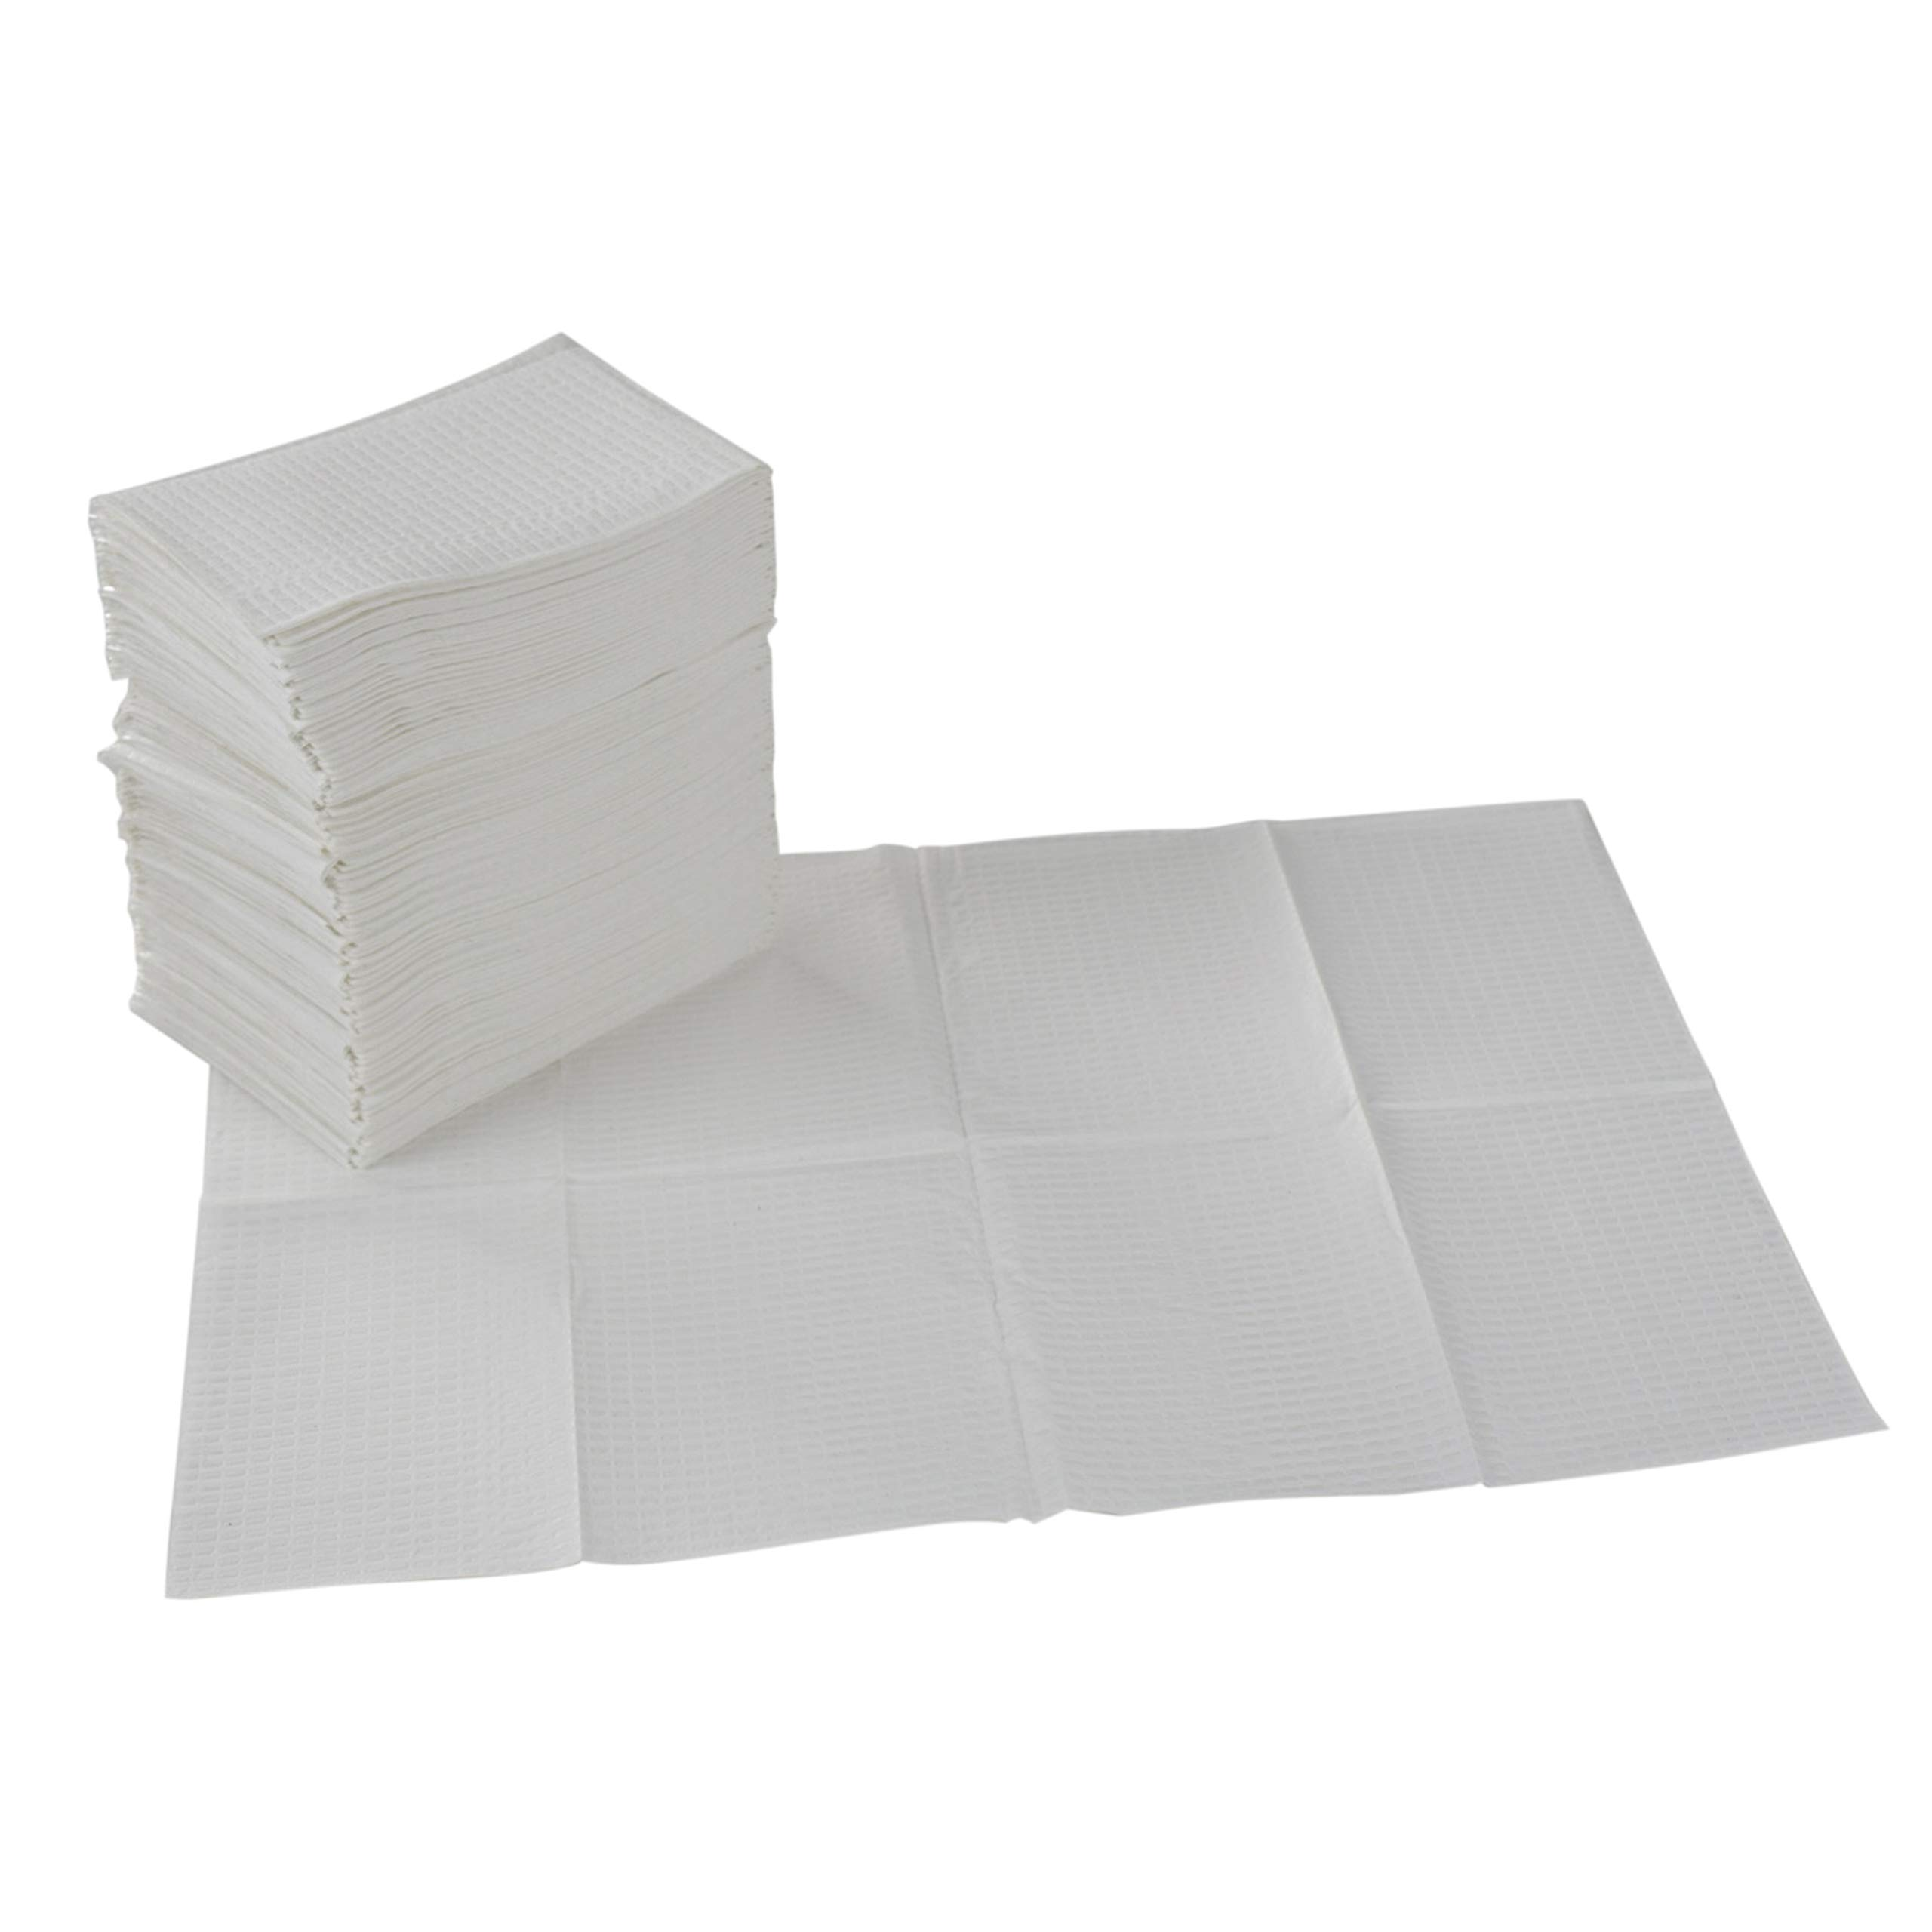 ECR4Kids ELR-003 2-Ply Disposable Baby Changing Station Sanitary Liners, 18'' x 13'', 500-Pack